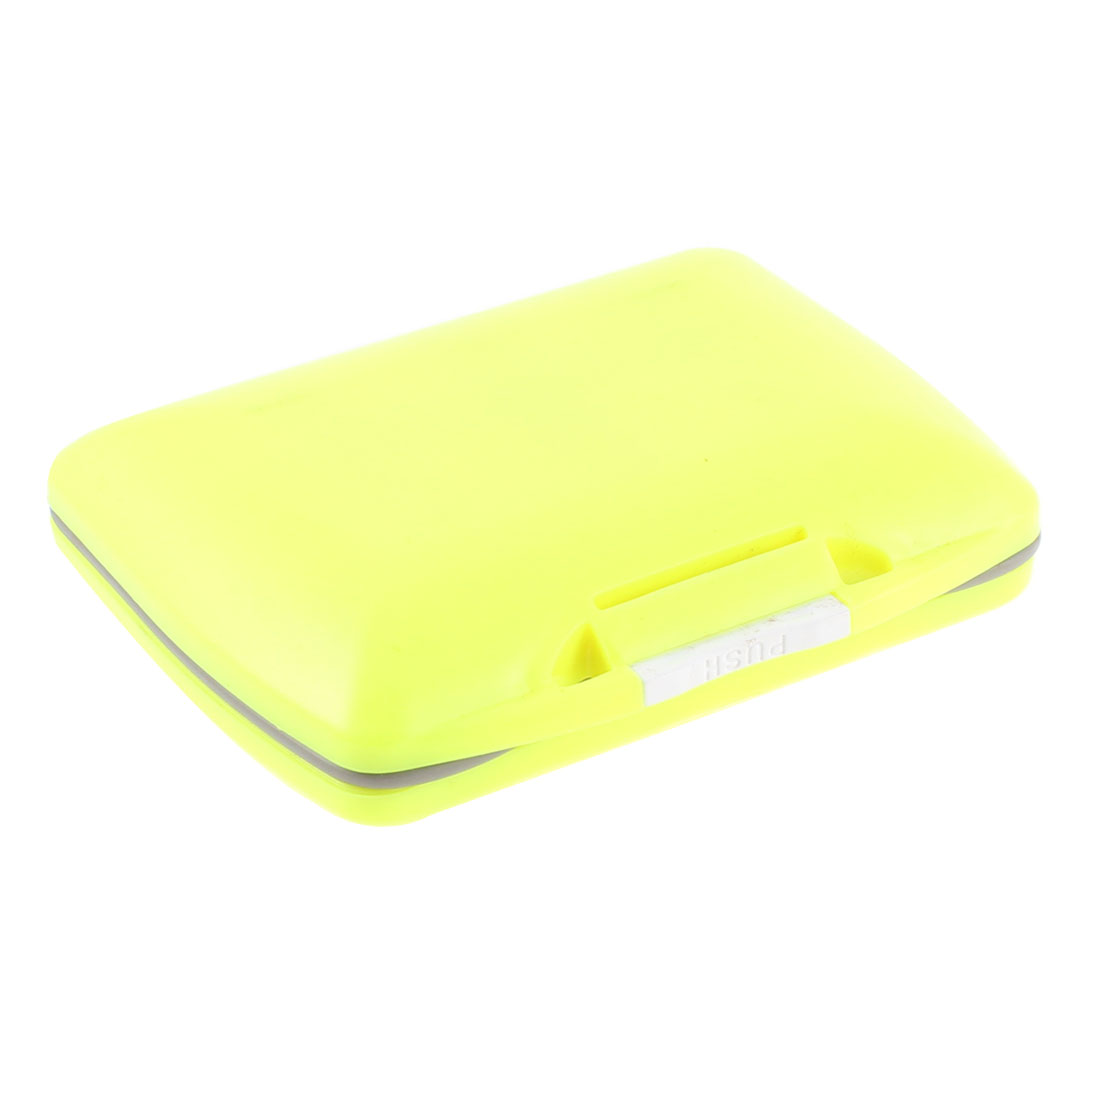 Plastic Case 15 Compartments Fishing Hooks Holder Box Organizer Yellow